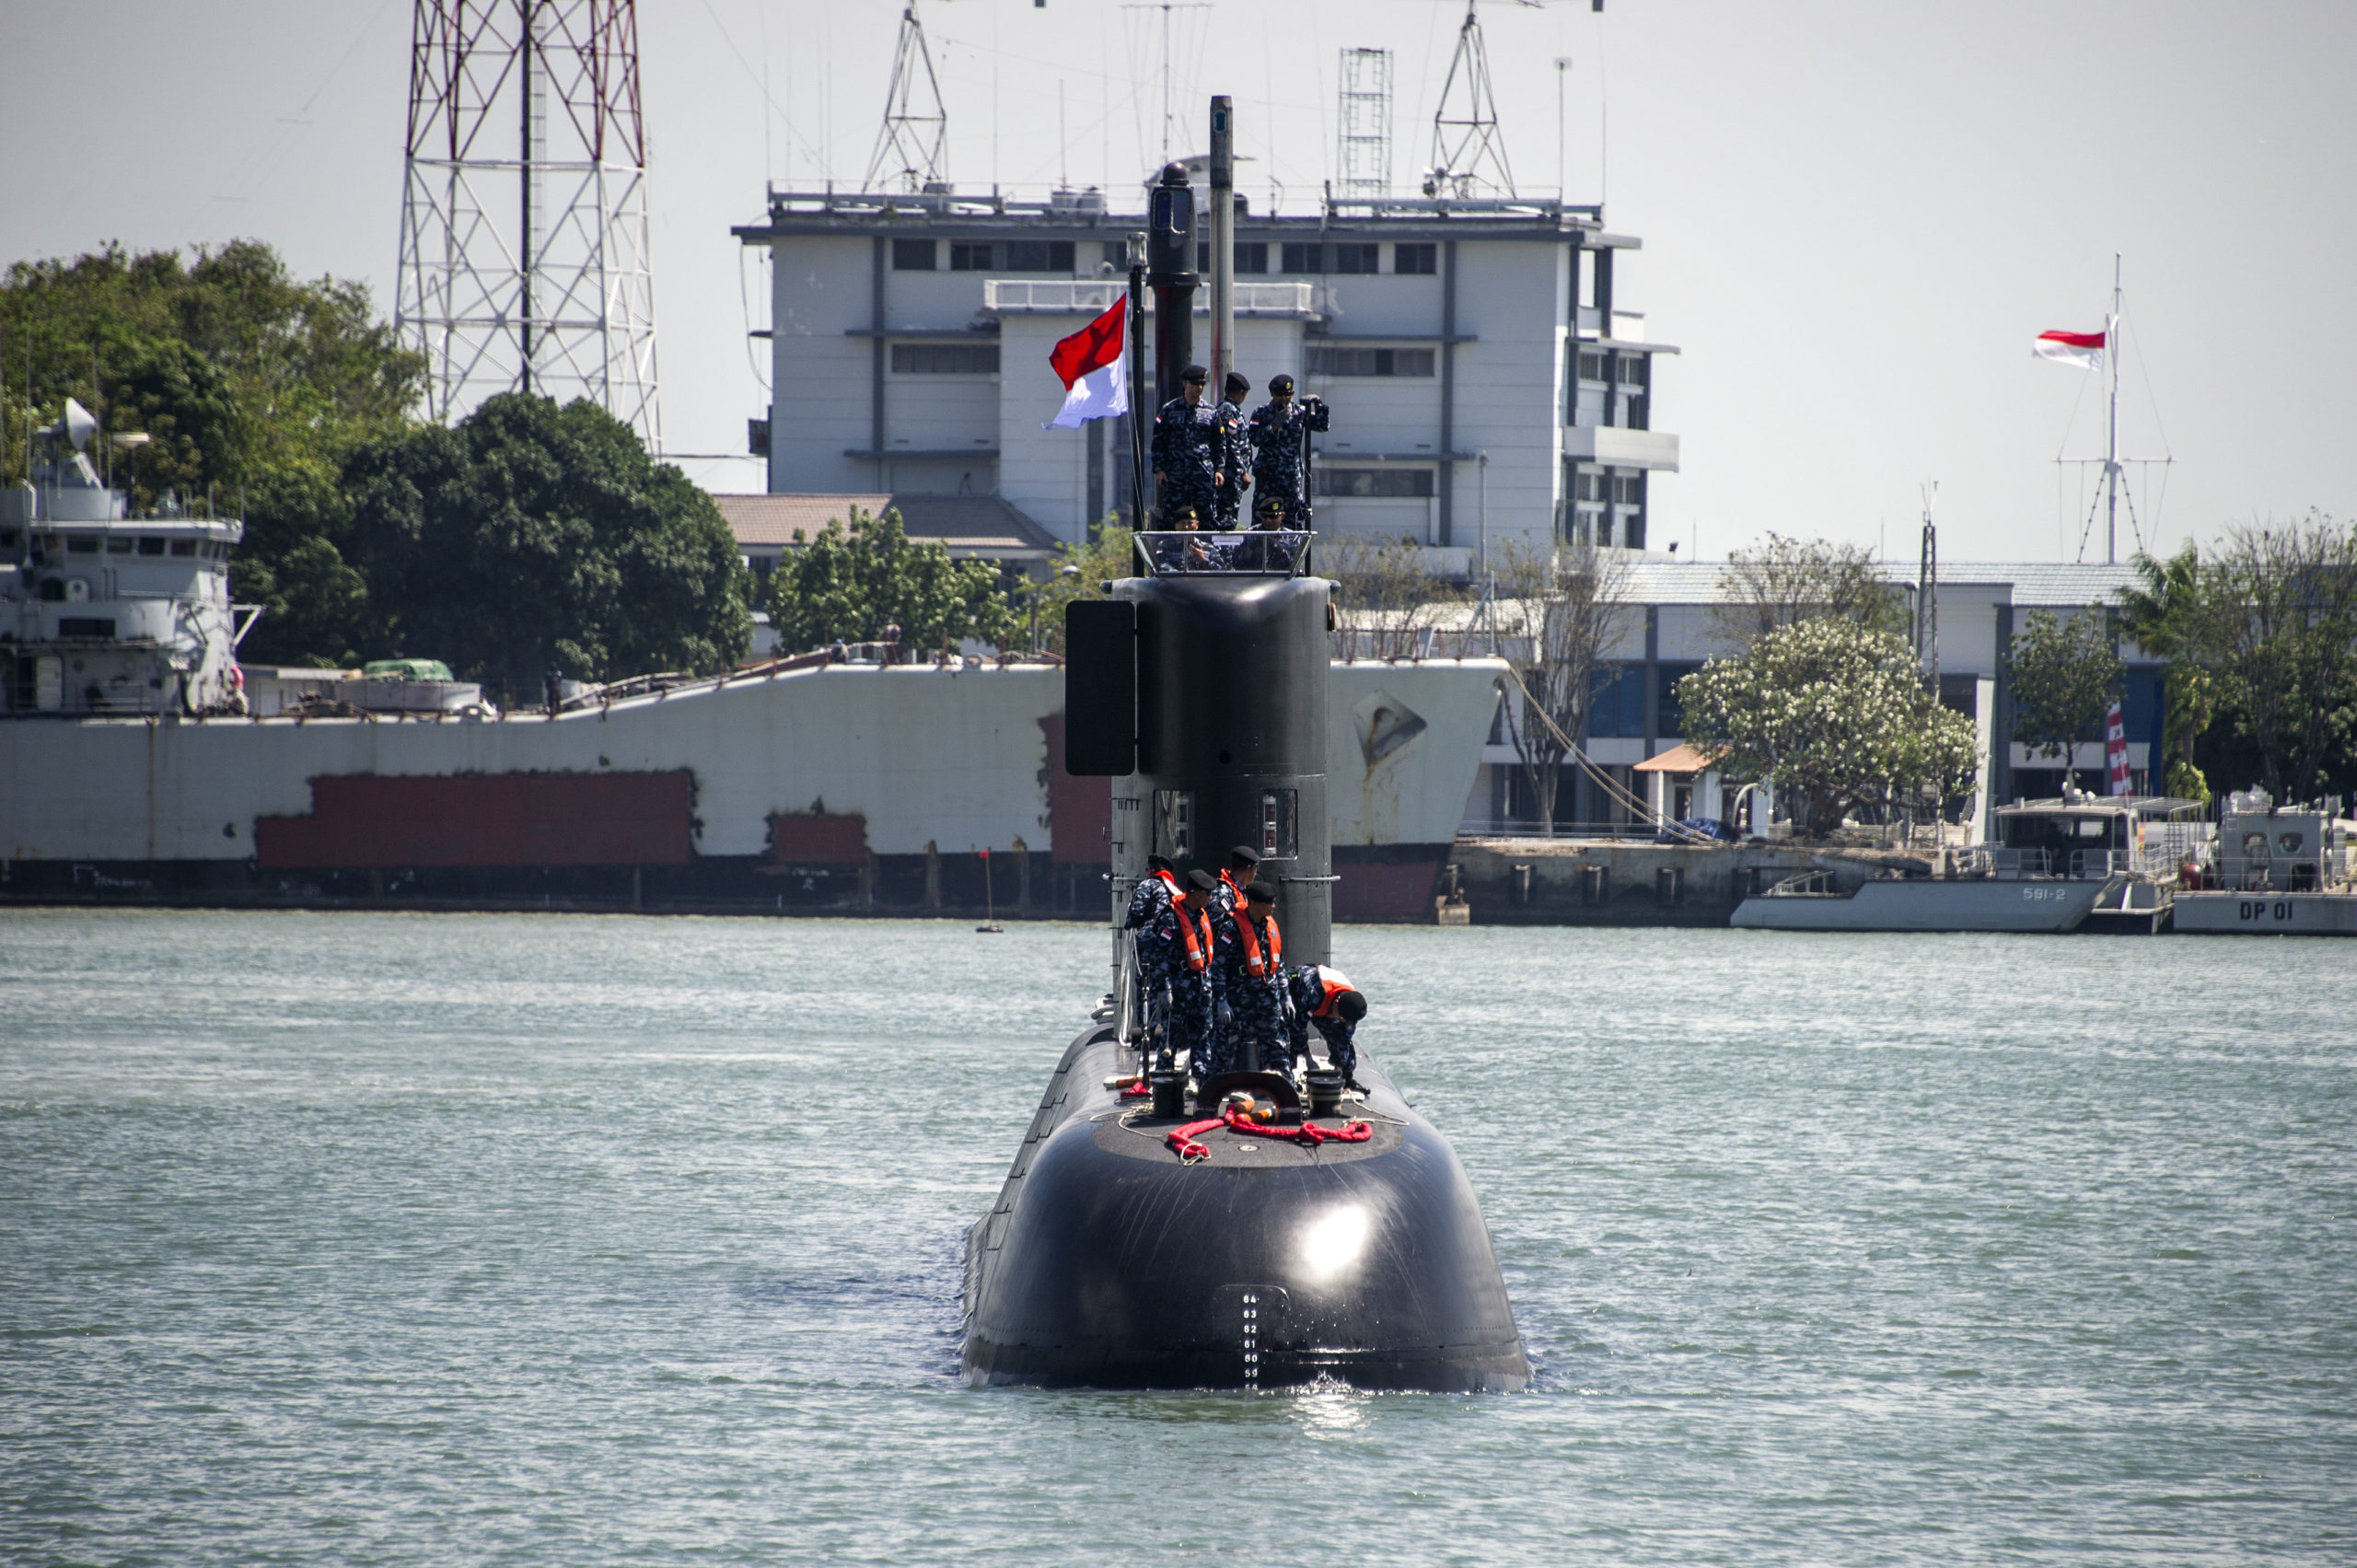 Indonesia's latest submarine KRI Nagapasa 403 arrives at the naval port in Surabaya on August 28, 2017. Nagapasa 403 is the third submarine in the Indonesian Navy and was built by Daewoo Shipbuilding and Marine Engineering in South Korea. / AFP PHOTO / JUNI KRISWANTO (Photo credit should read JUNI KRISWANTO/AFP via Getty Images)